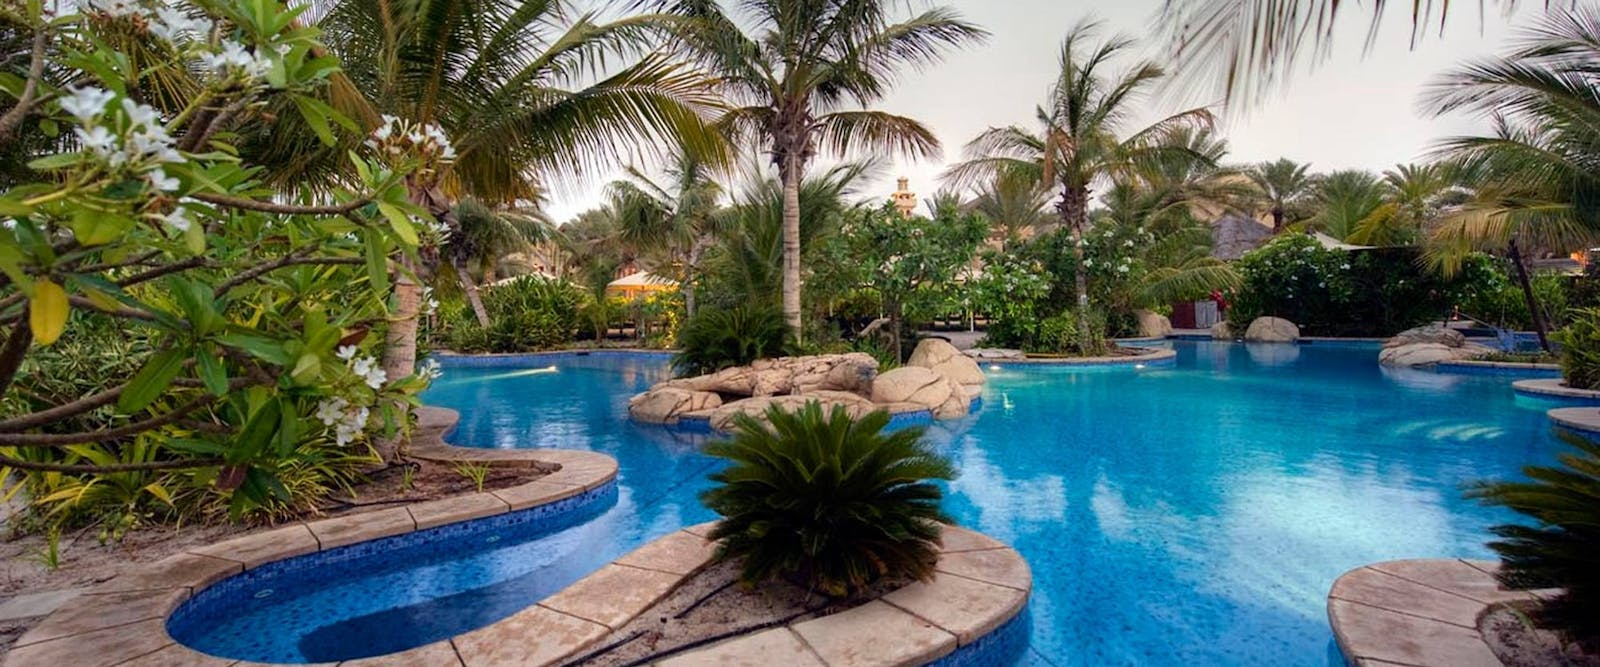 Executive Pool at at Beit Al Bahar Villas, Jumeirah Beach Hotel, Dubai